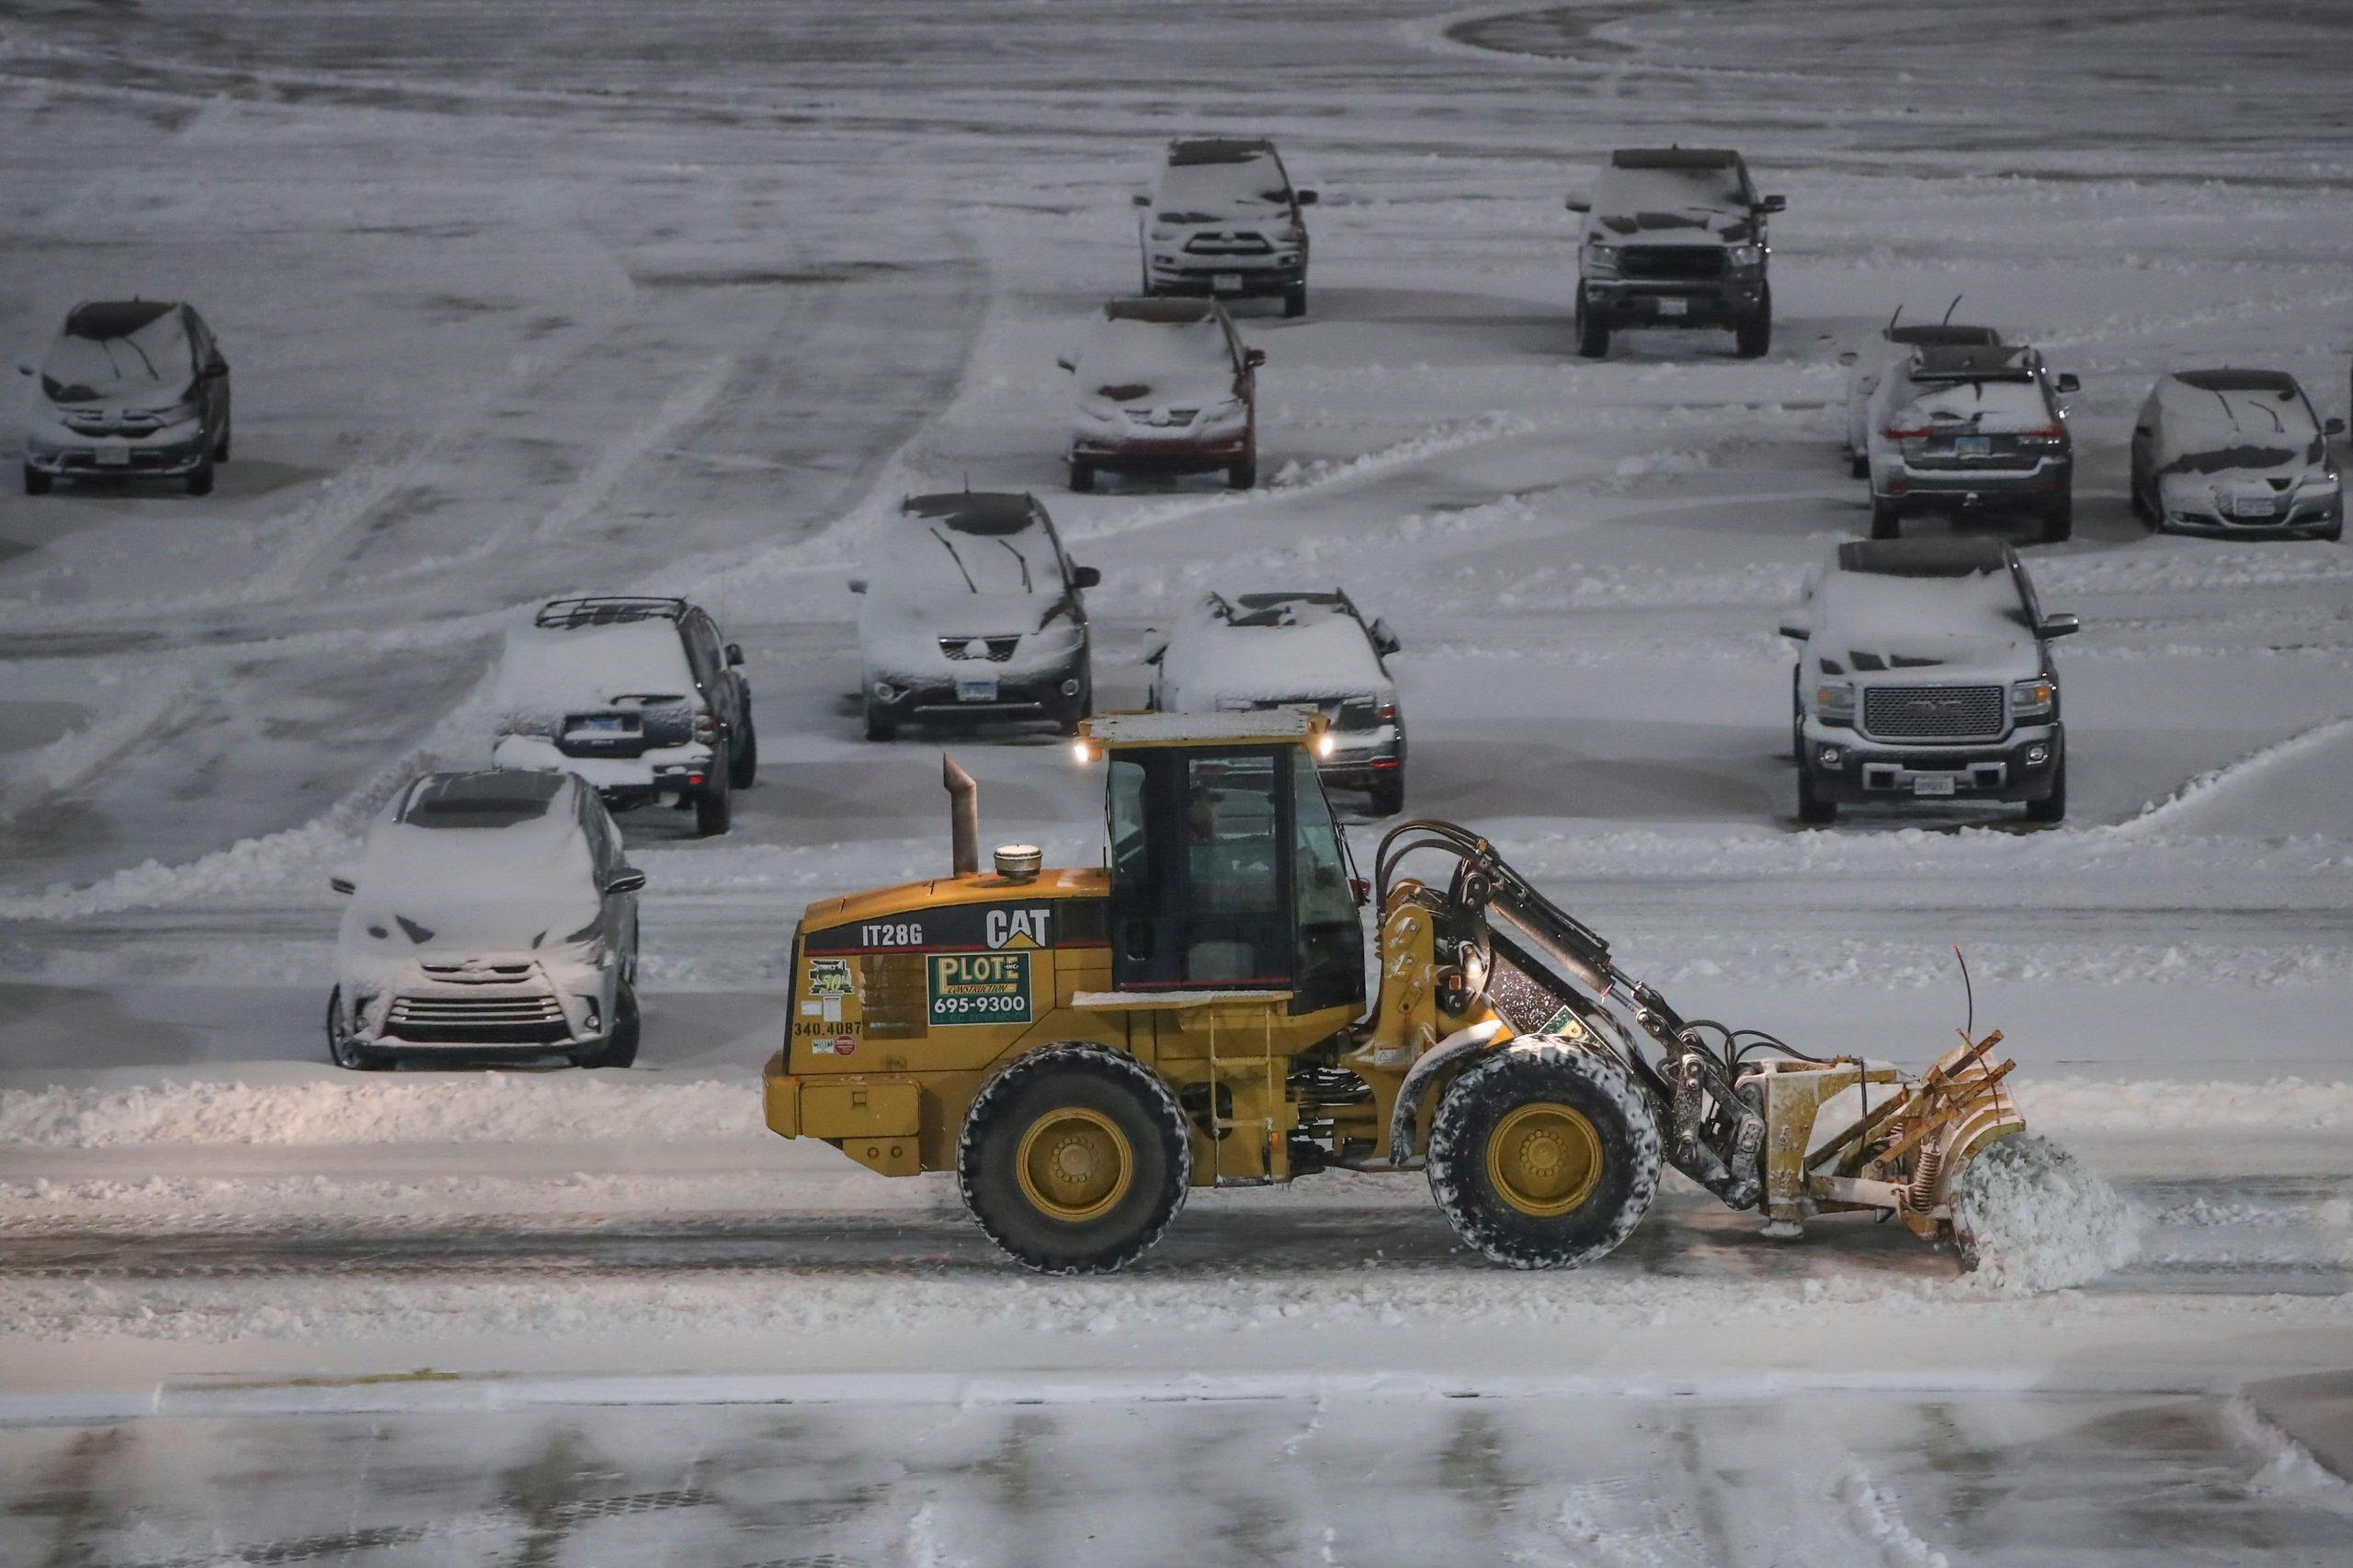 airlines-cancel-most-nyc-area-flights-ahead-of-snowstorm